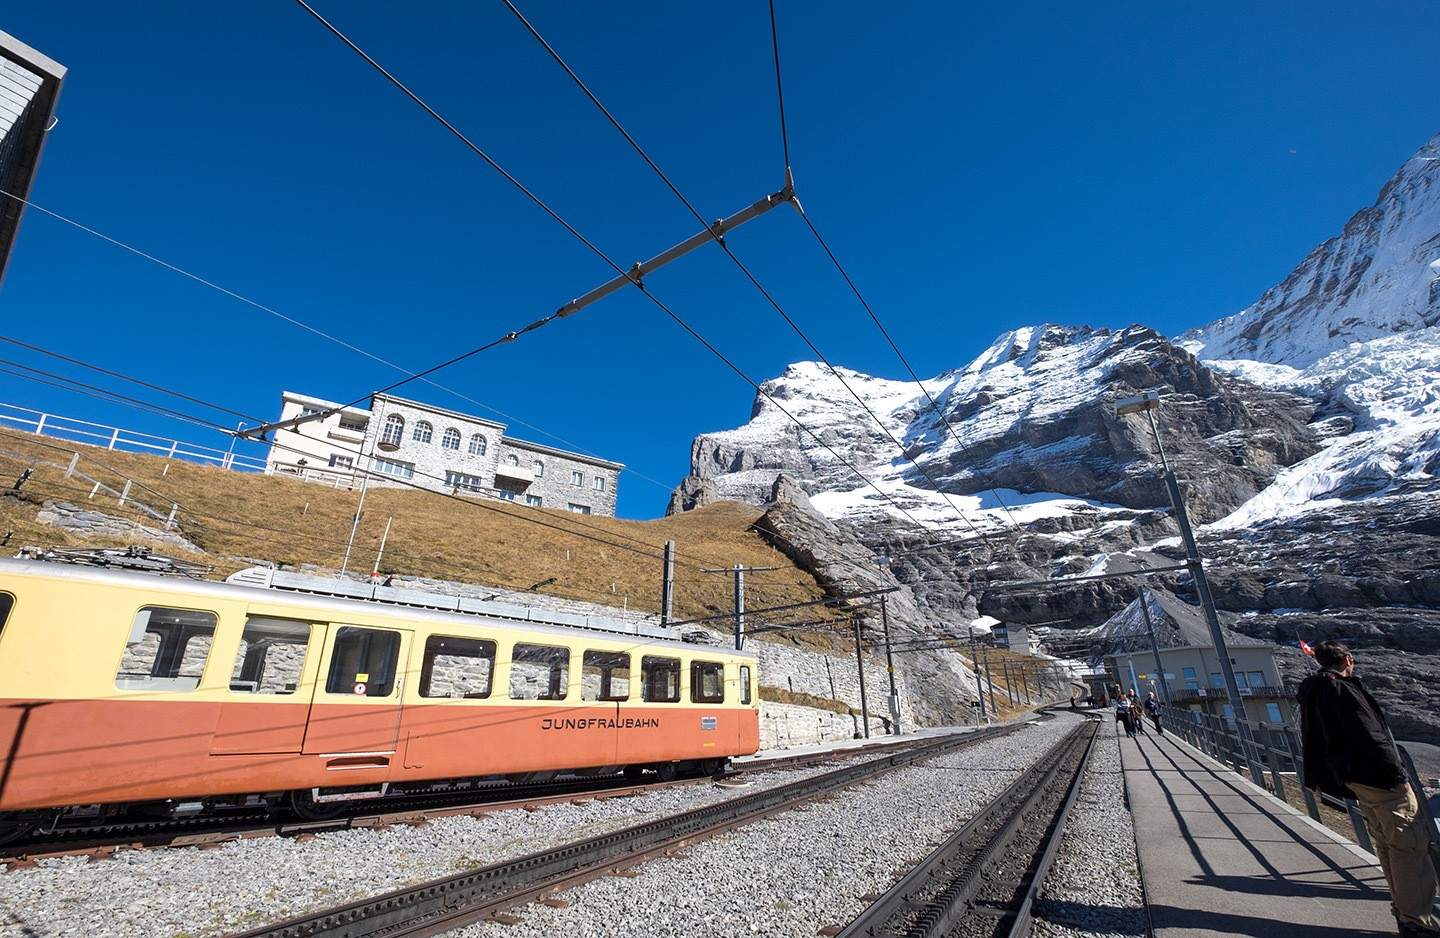 Jungfrau Railways, Switzerland